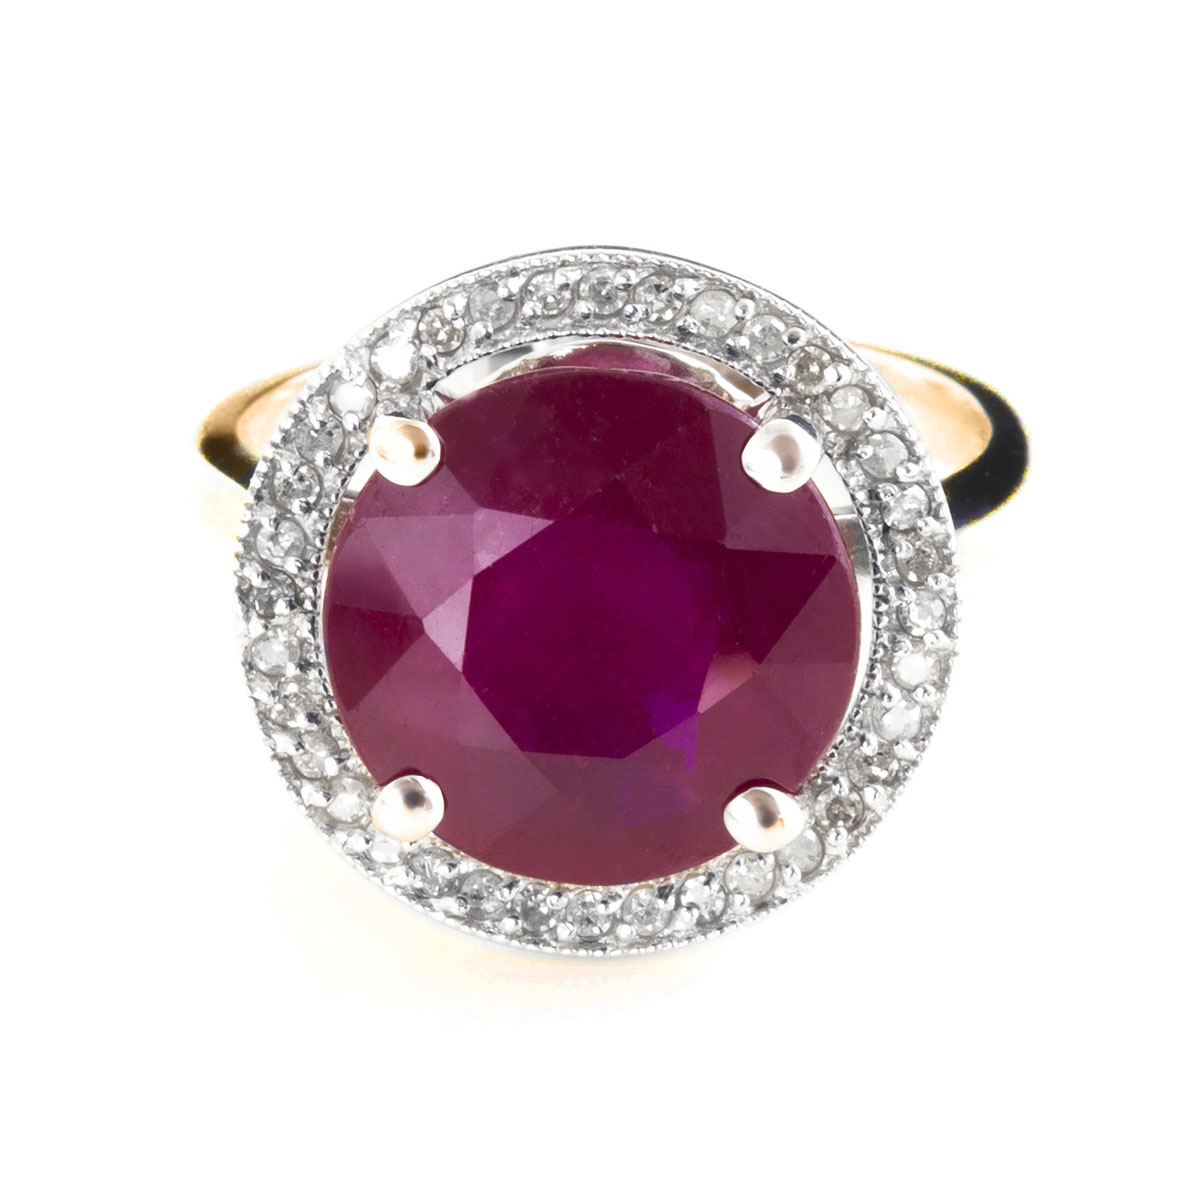 Ruby & Diamond Halo Ring in 9ct Gold